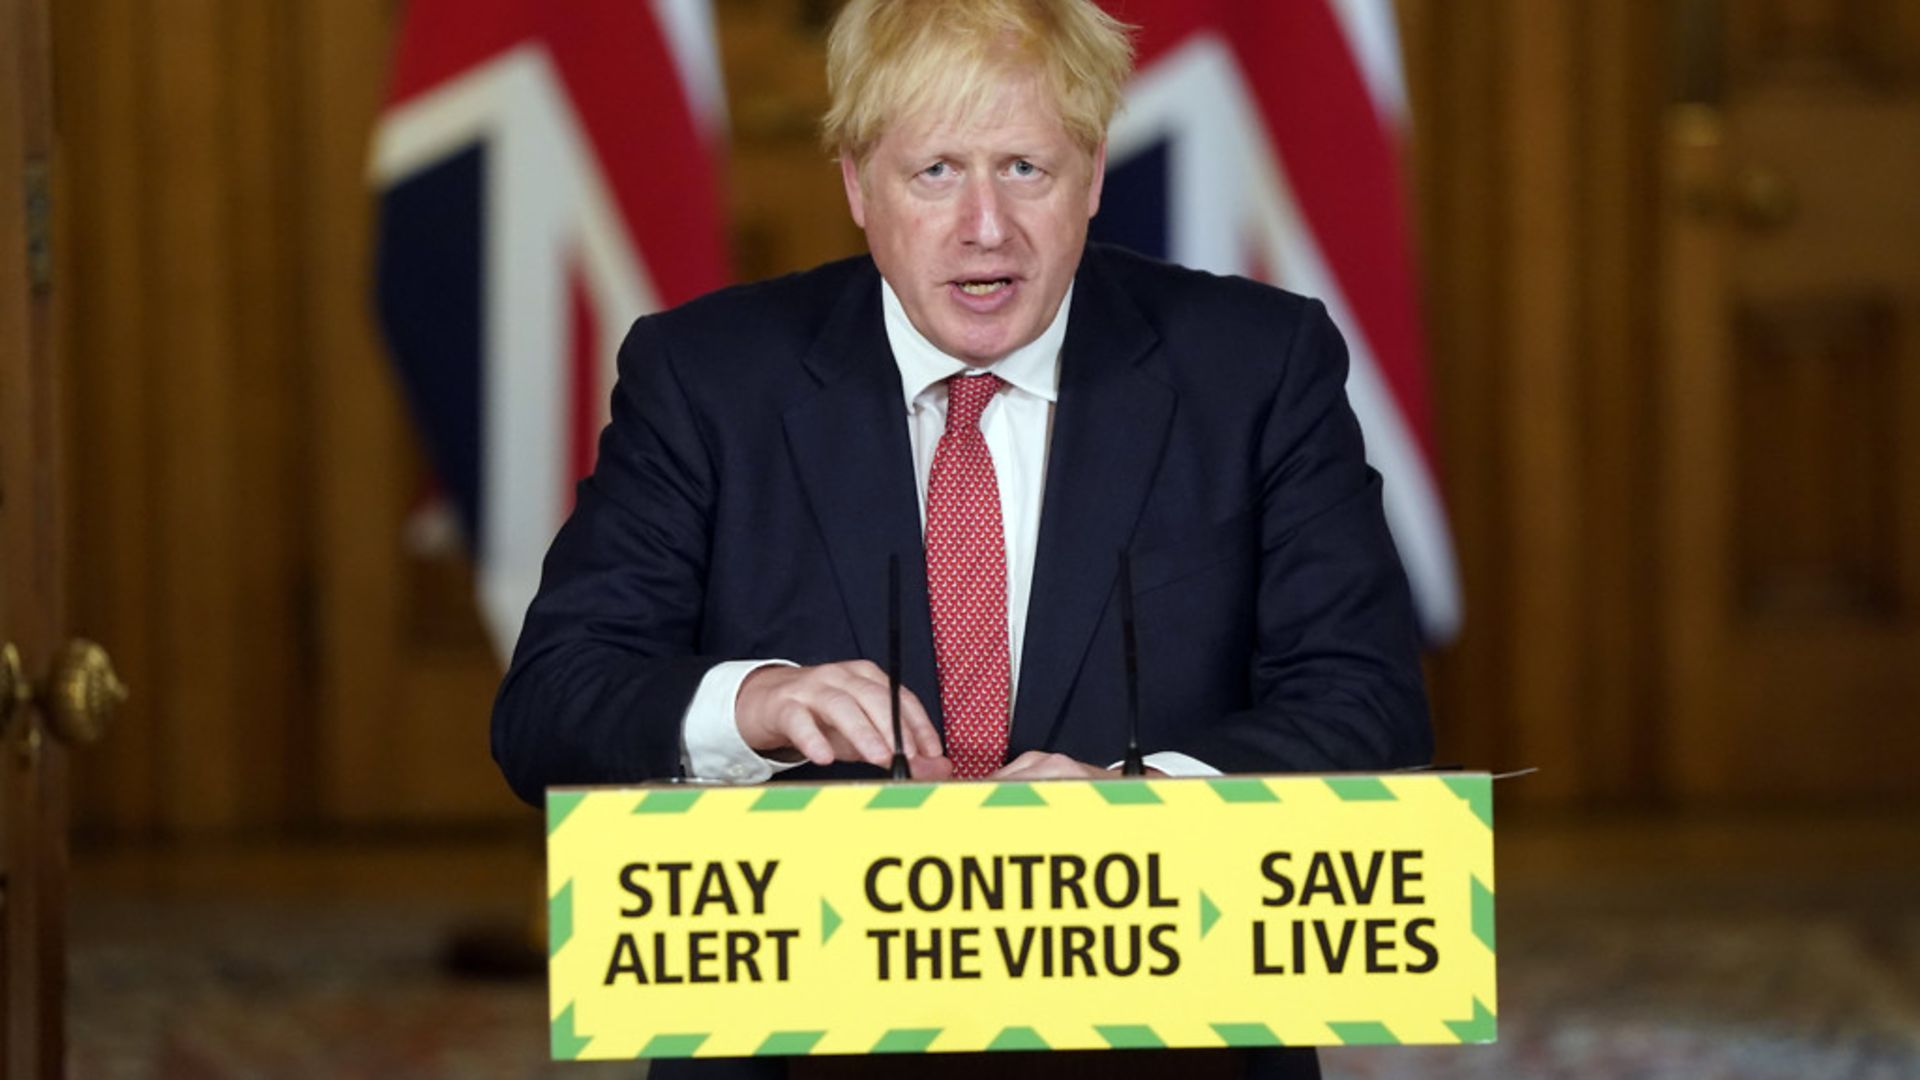 Prime minister Boris Johnson during a press briefing in Downing Street, London, on coronavirus - Credit: PA